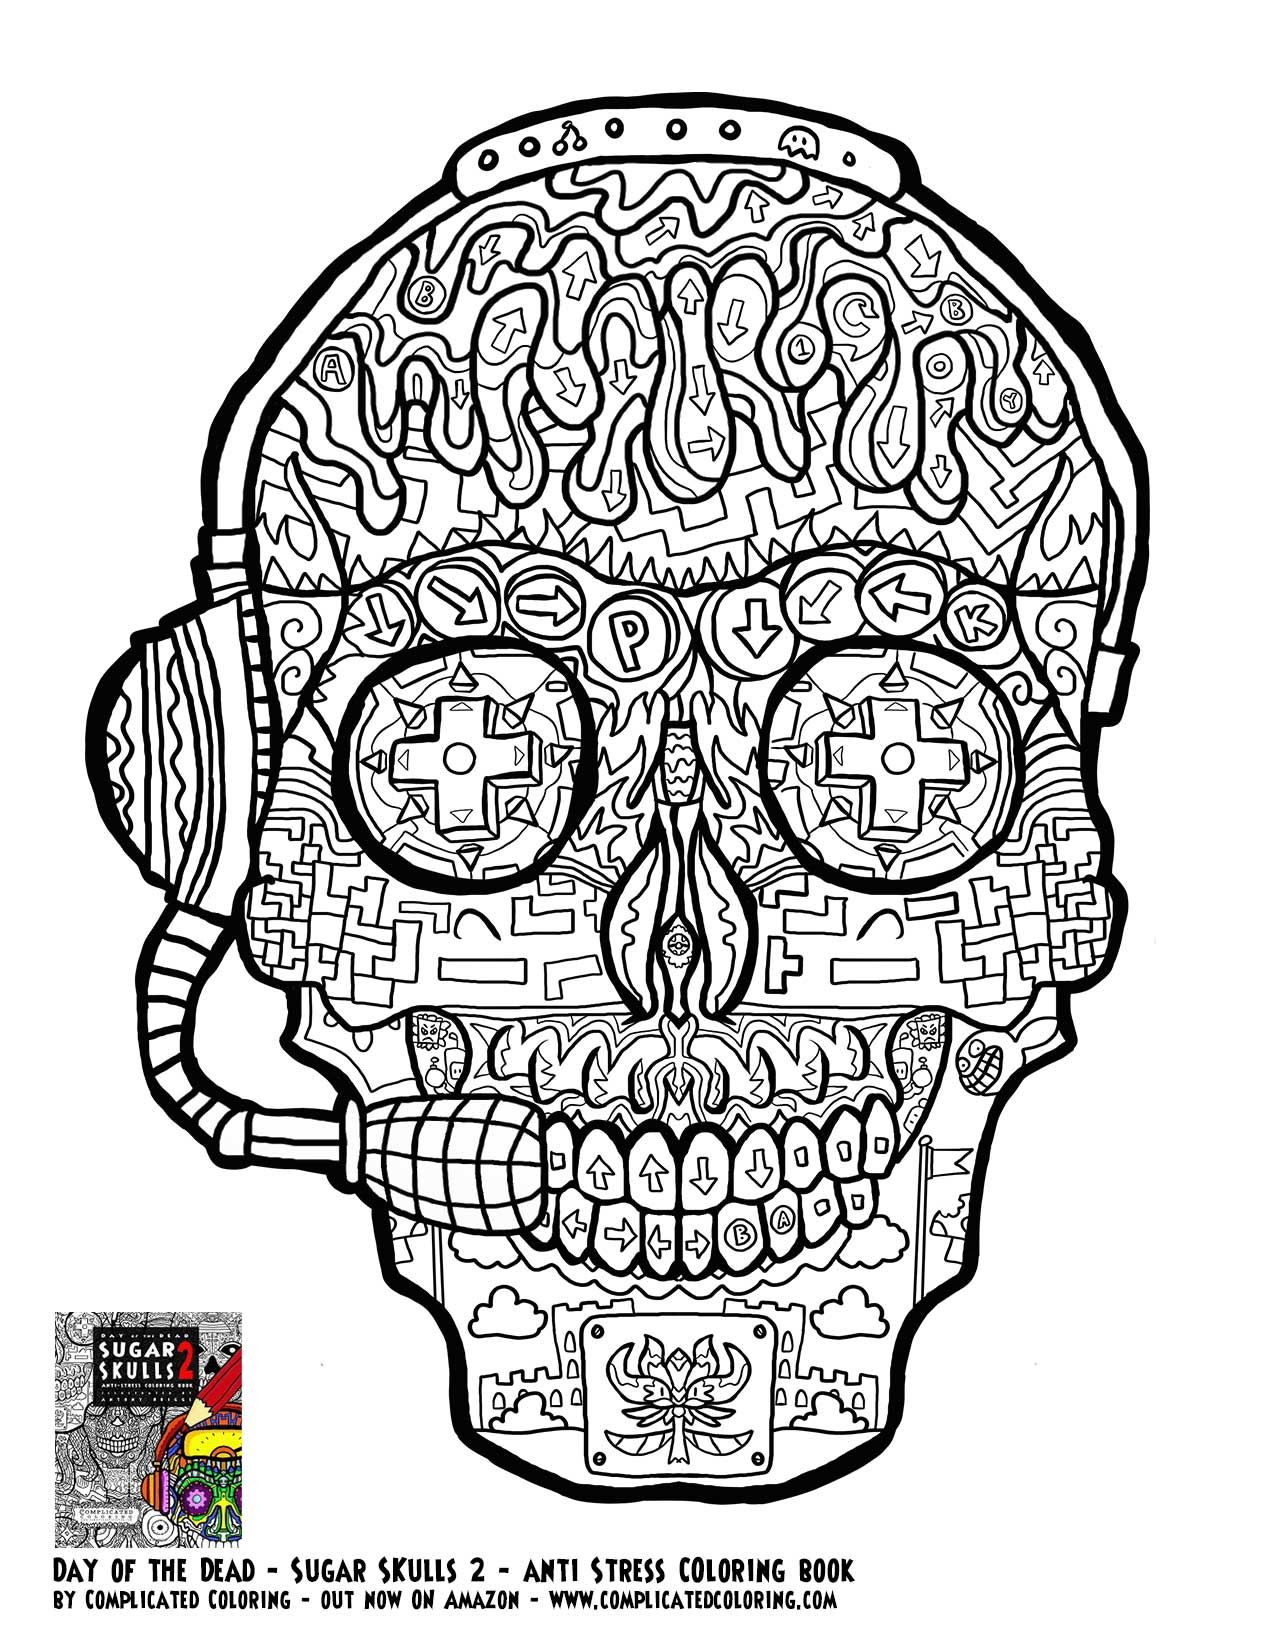 find this pin and more on cool coloring pages by wowens12810